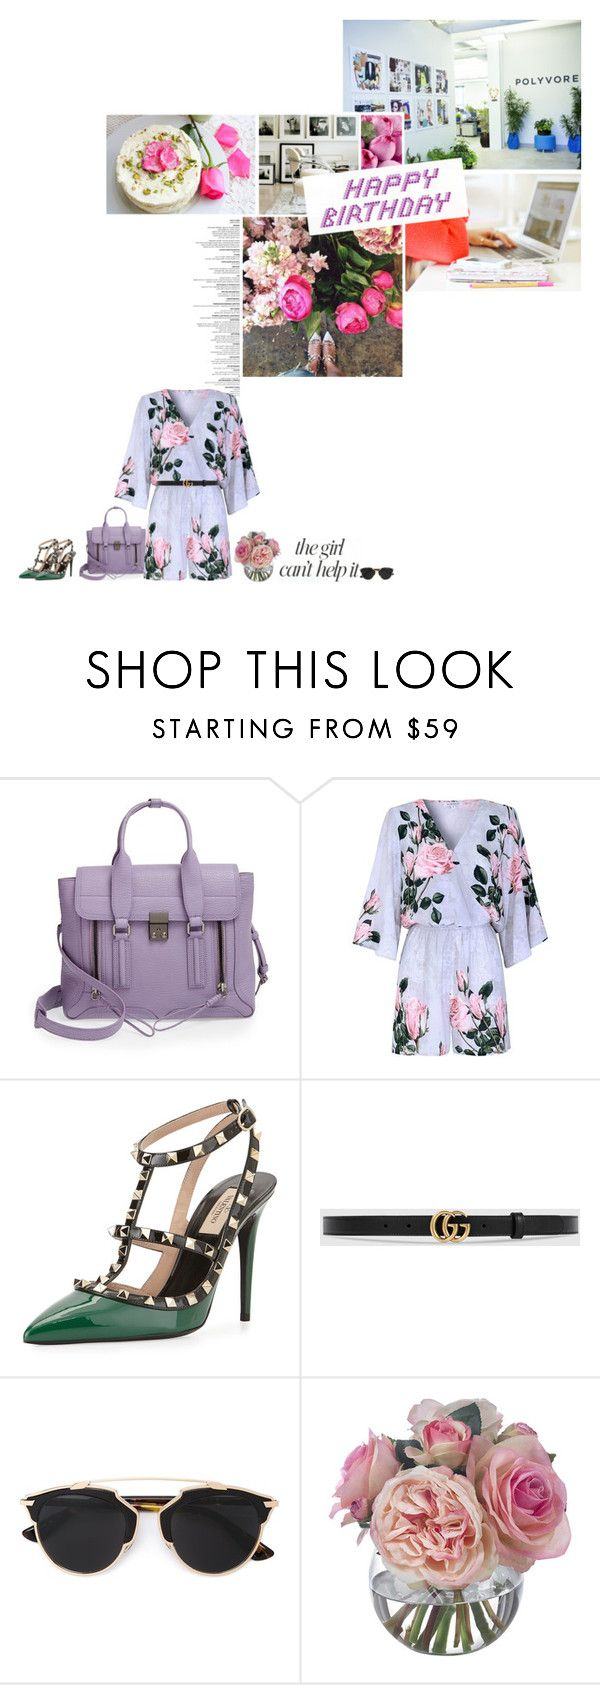 """Feliz & Happy"" by fearlessgilmore ❤ liked on Polyvore featuring 3.1 Phillip Lim, Jennifer Lopez, Glamorous, Valentino, Gucci, Christian Dior, La Vie en Rose, Diane James, women's clothing and women"